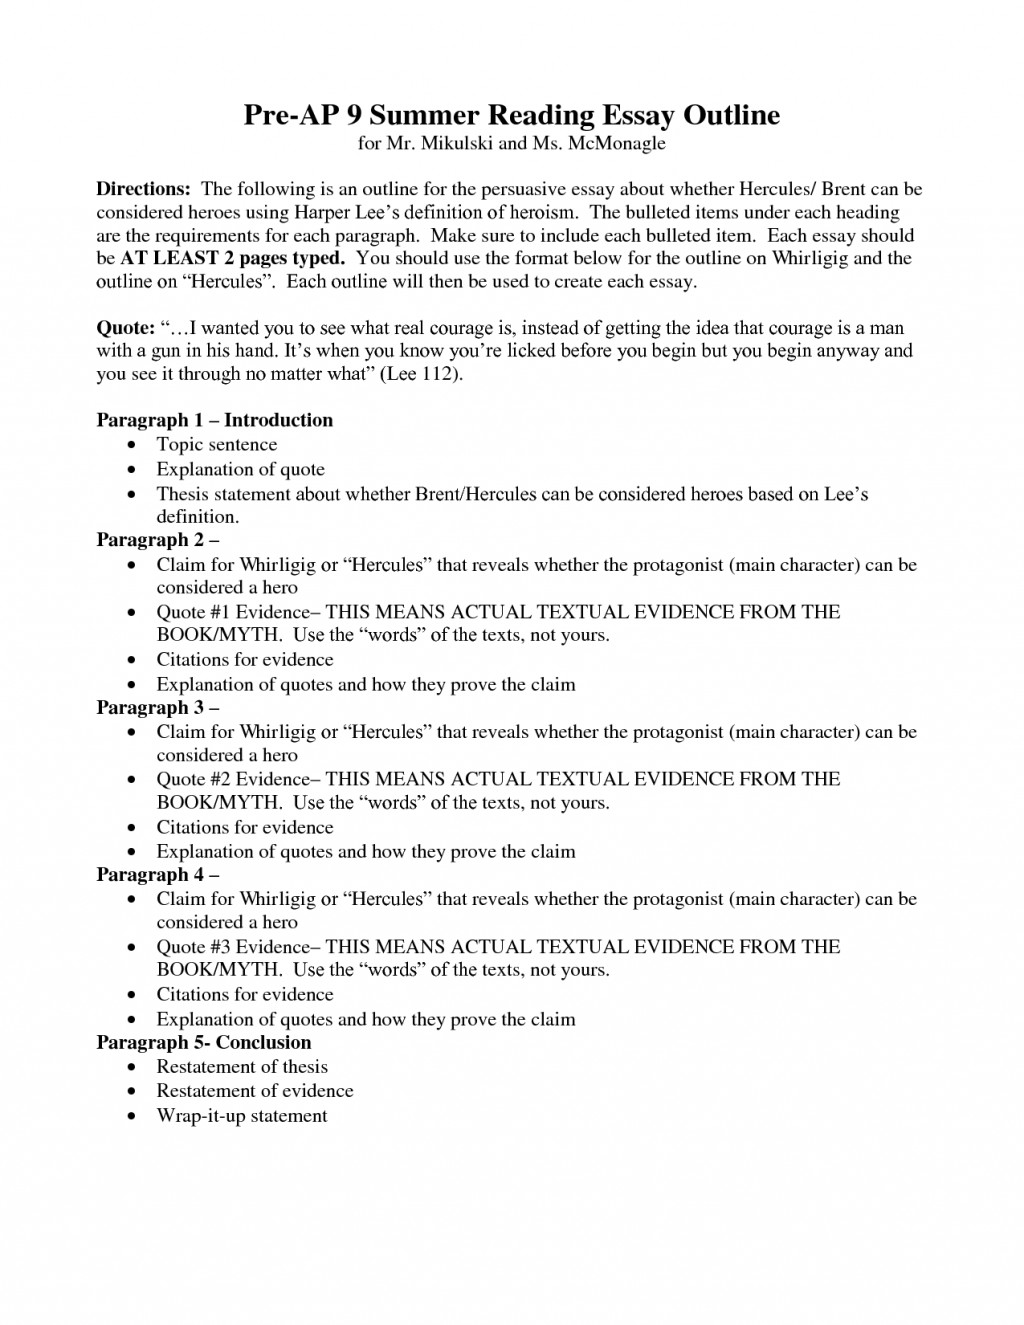 018 Essay Example Writing Definition About Heroism Essays Sample Format Of Freedom On Happiness Success Topics Love Family Respect Extended Friendship How To Awesome Write A Introduction Conclusion Paragraph For Outline Large